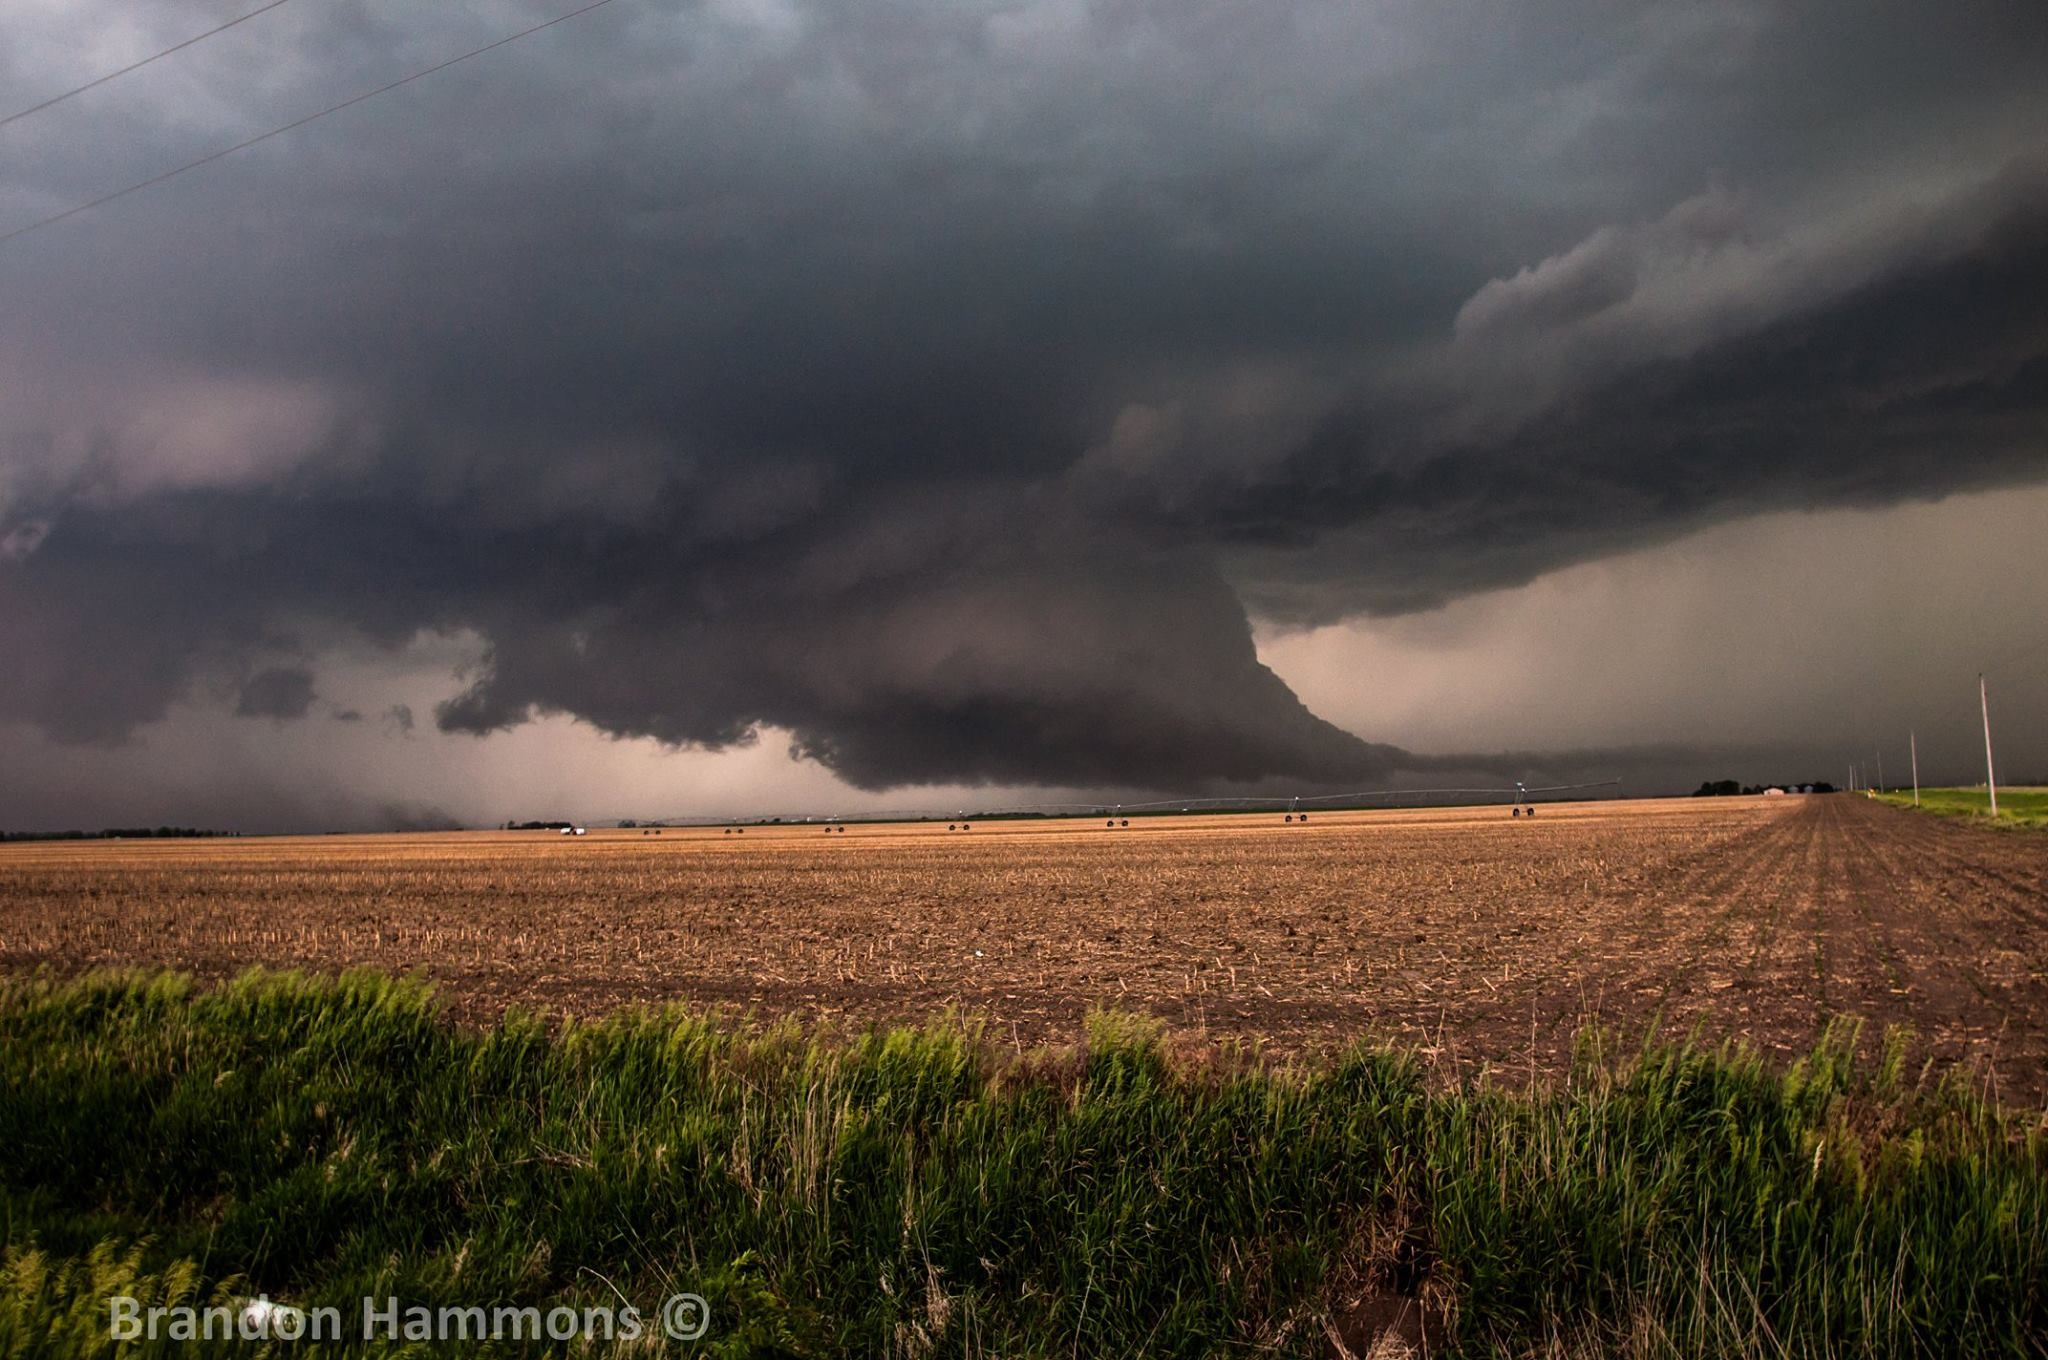 large wall cloud associated with this supercell storm on wall cloud id=34927